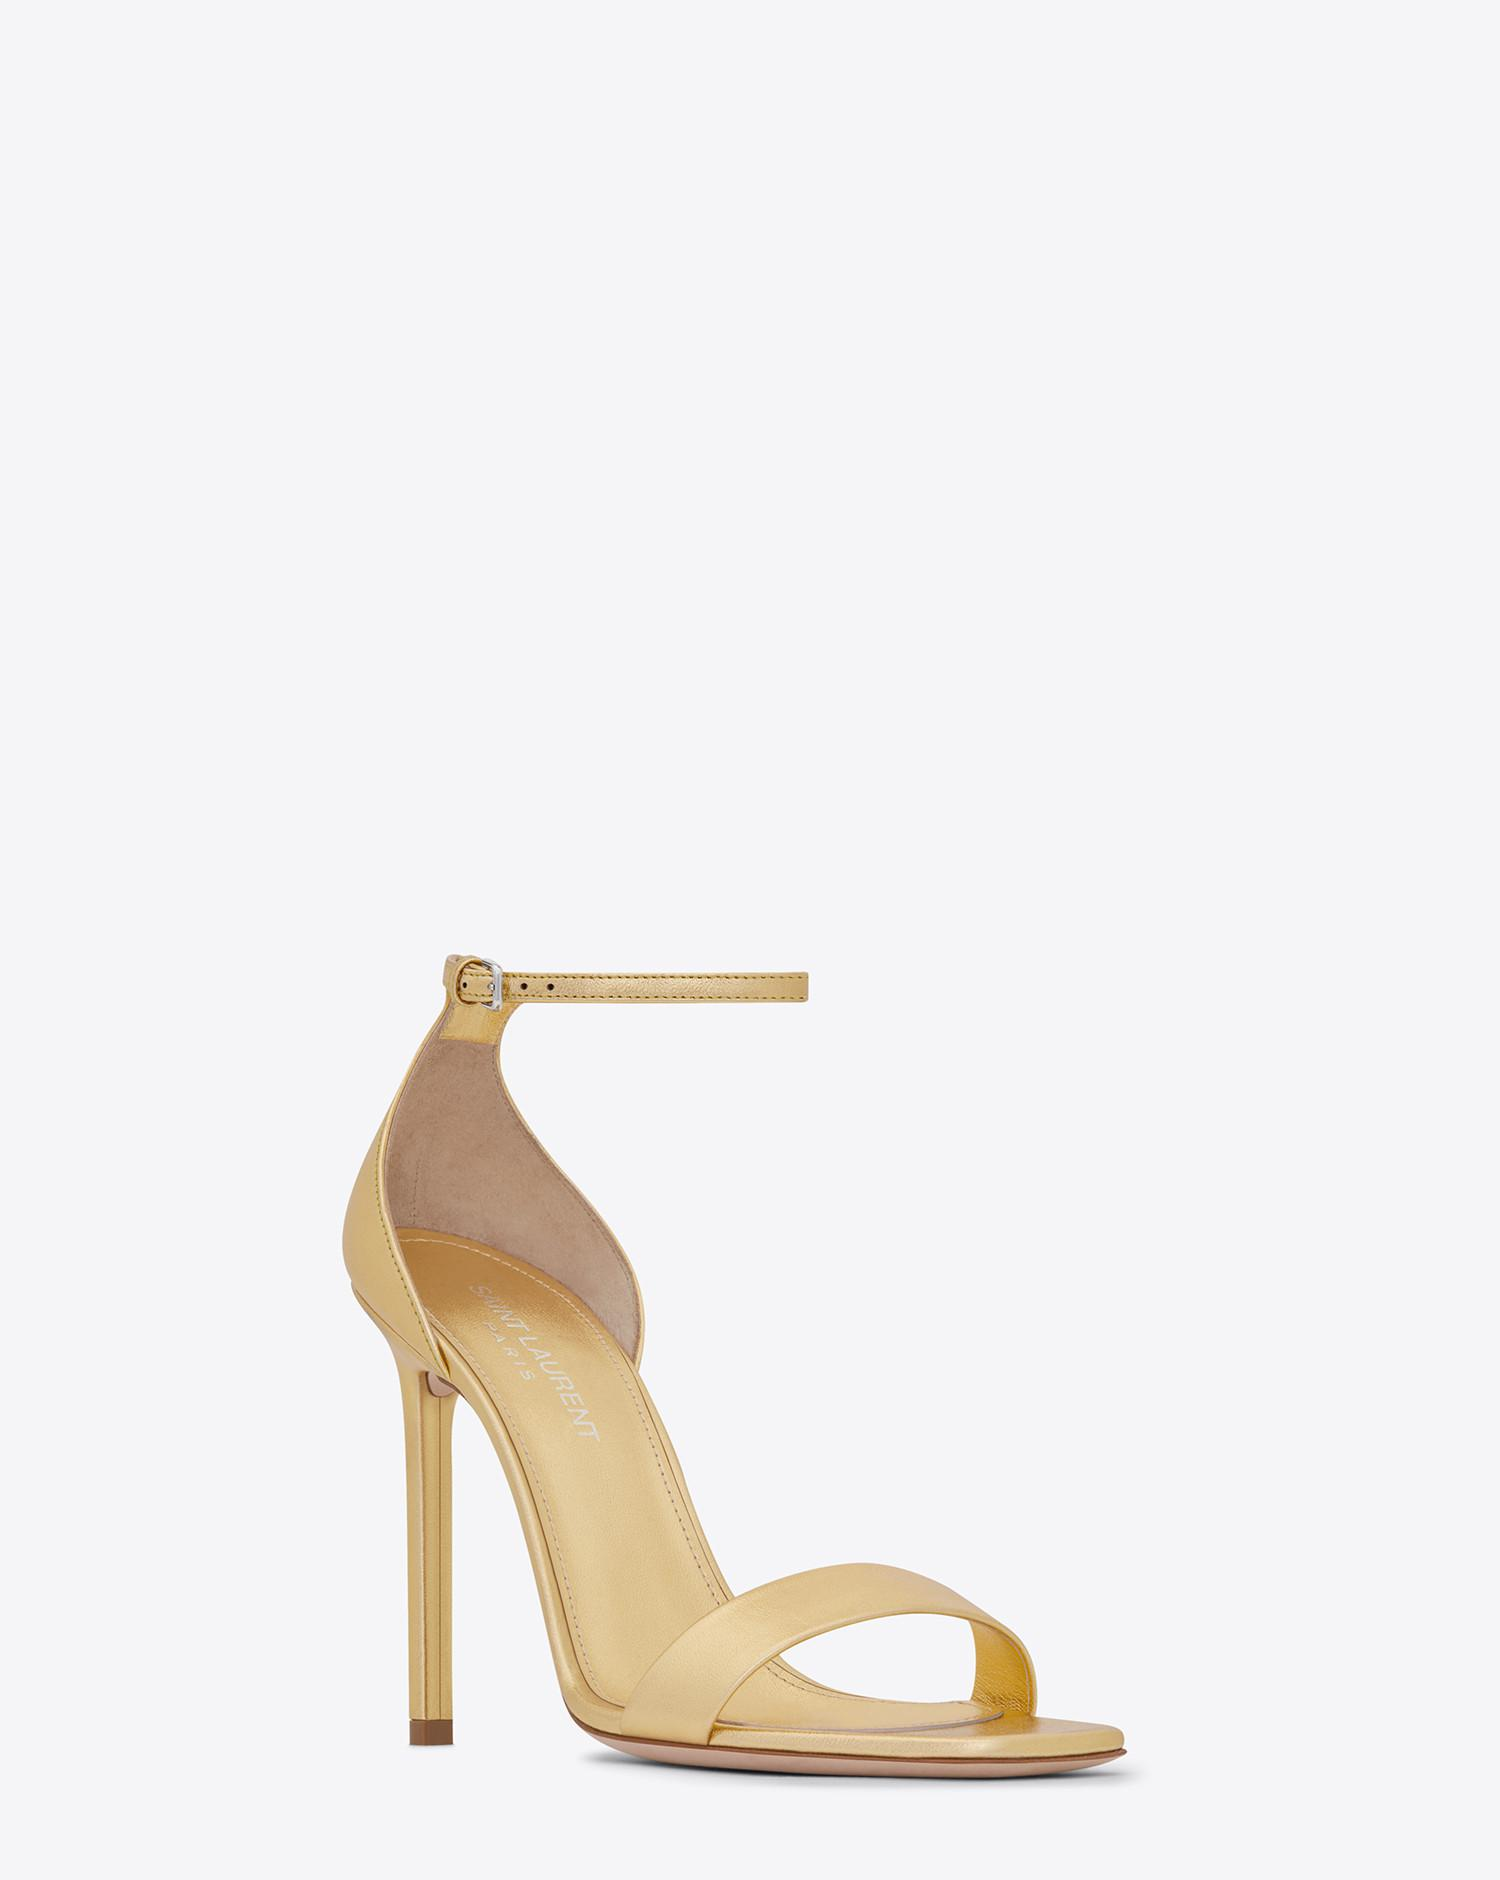 ceffdc58ab8b Saint Laurent Amber Sandal In Metalized Leather in Metallic - Lyst